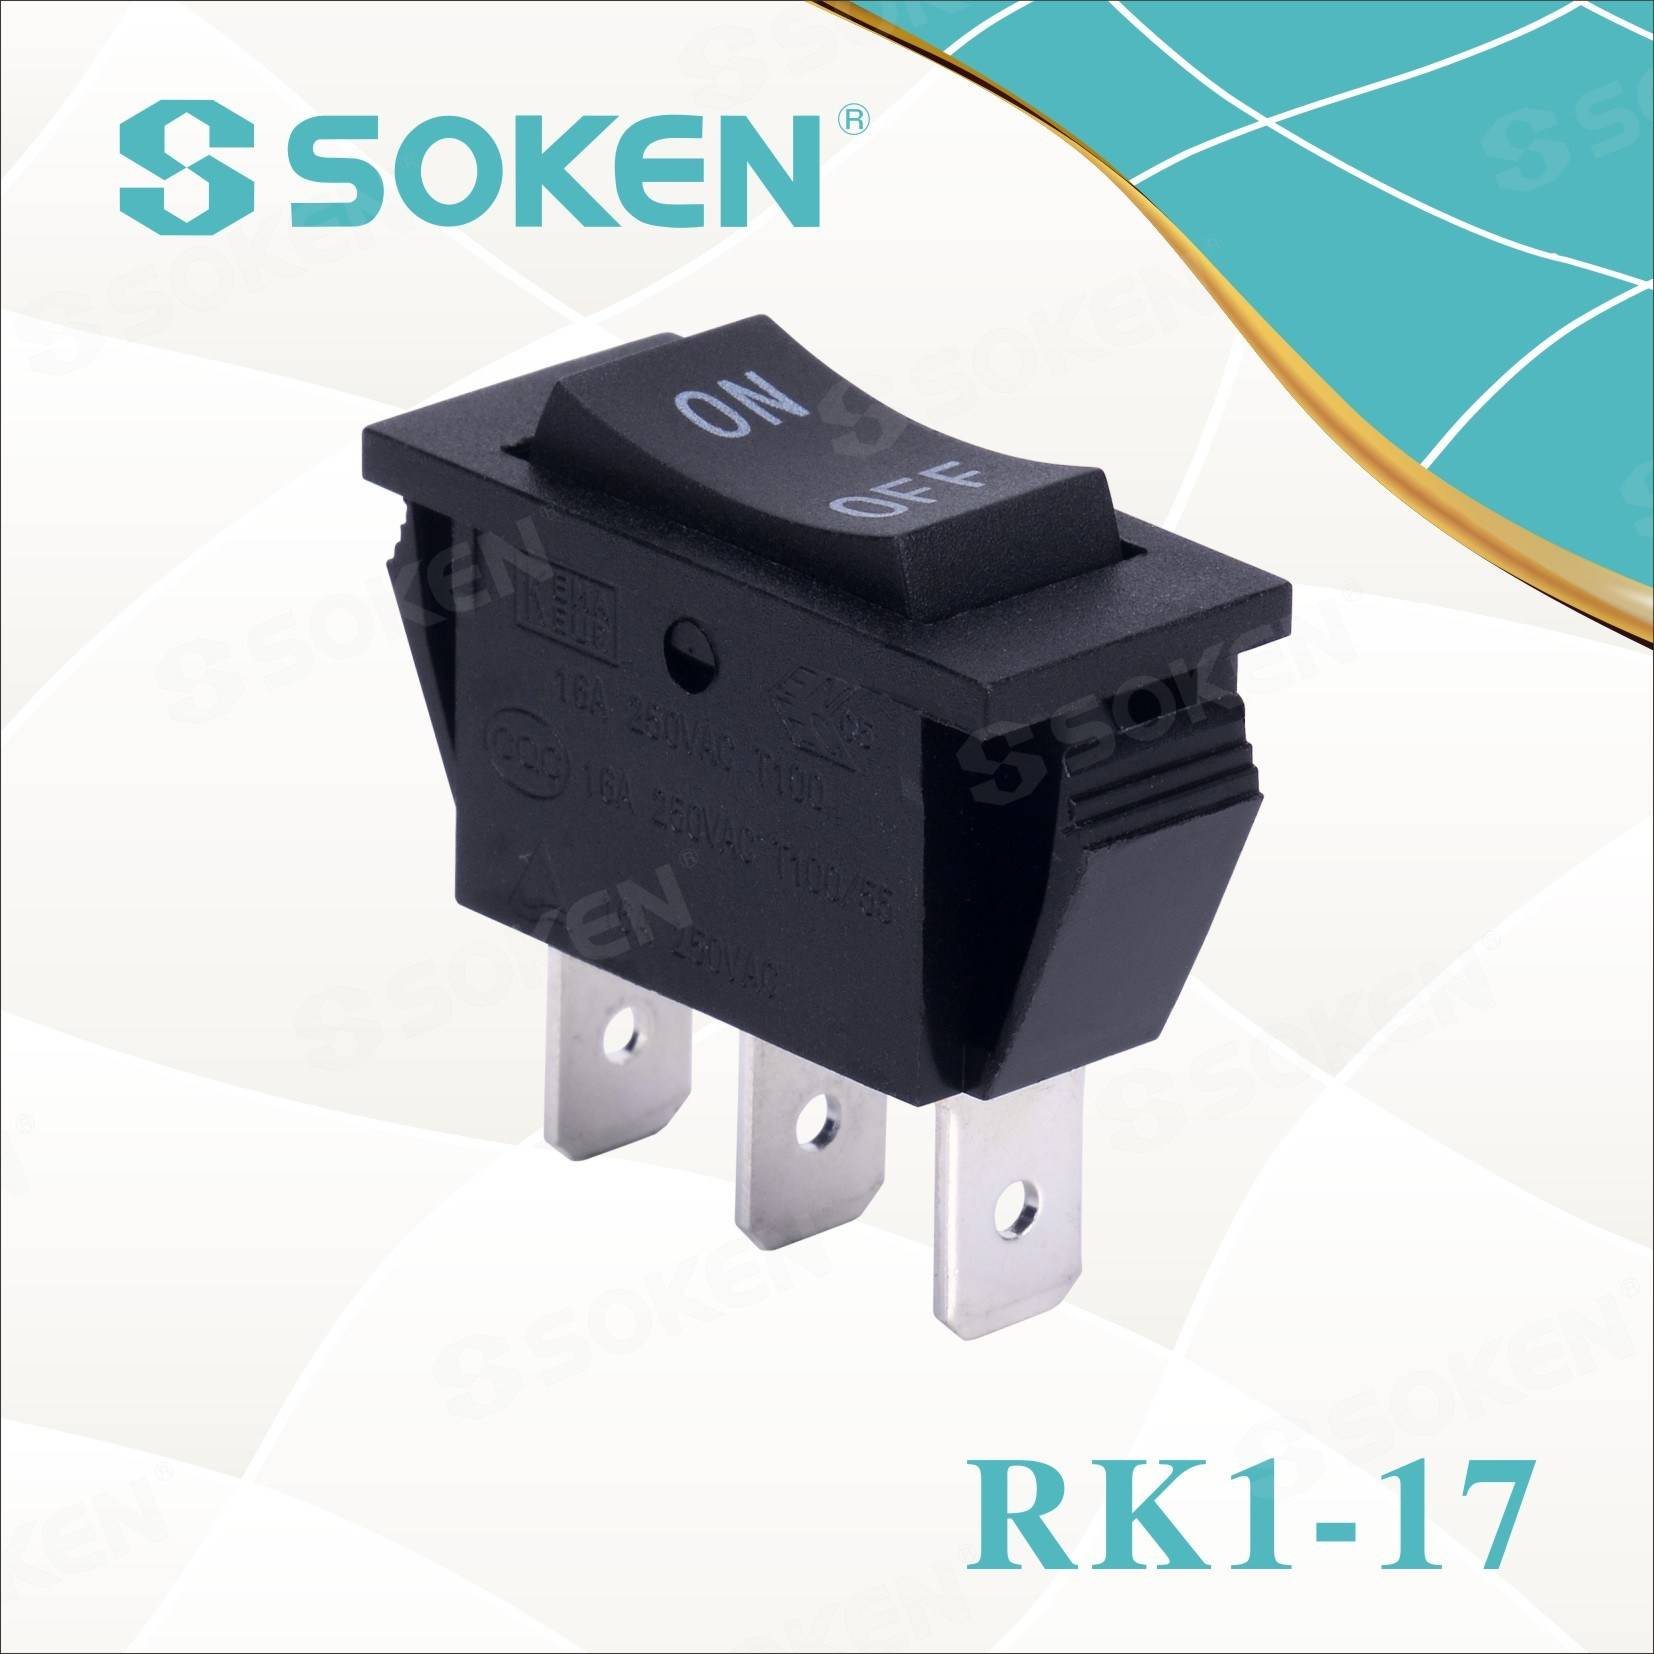 Hinc 3pins rocker switch super Soken Rk1-17 1X3